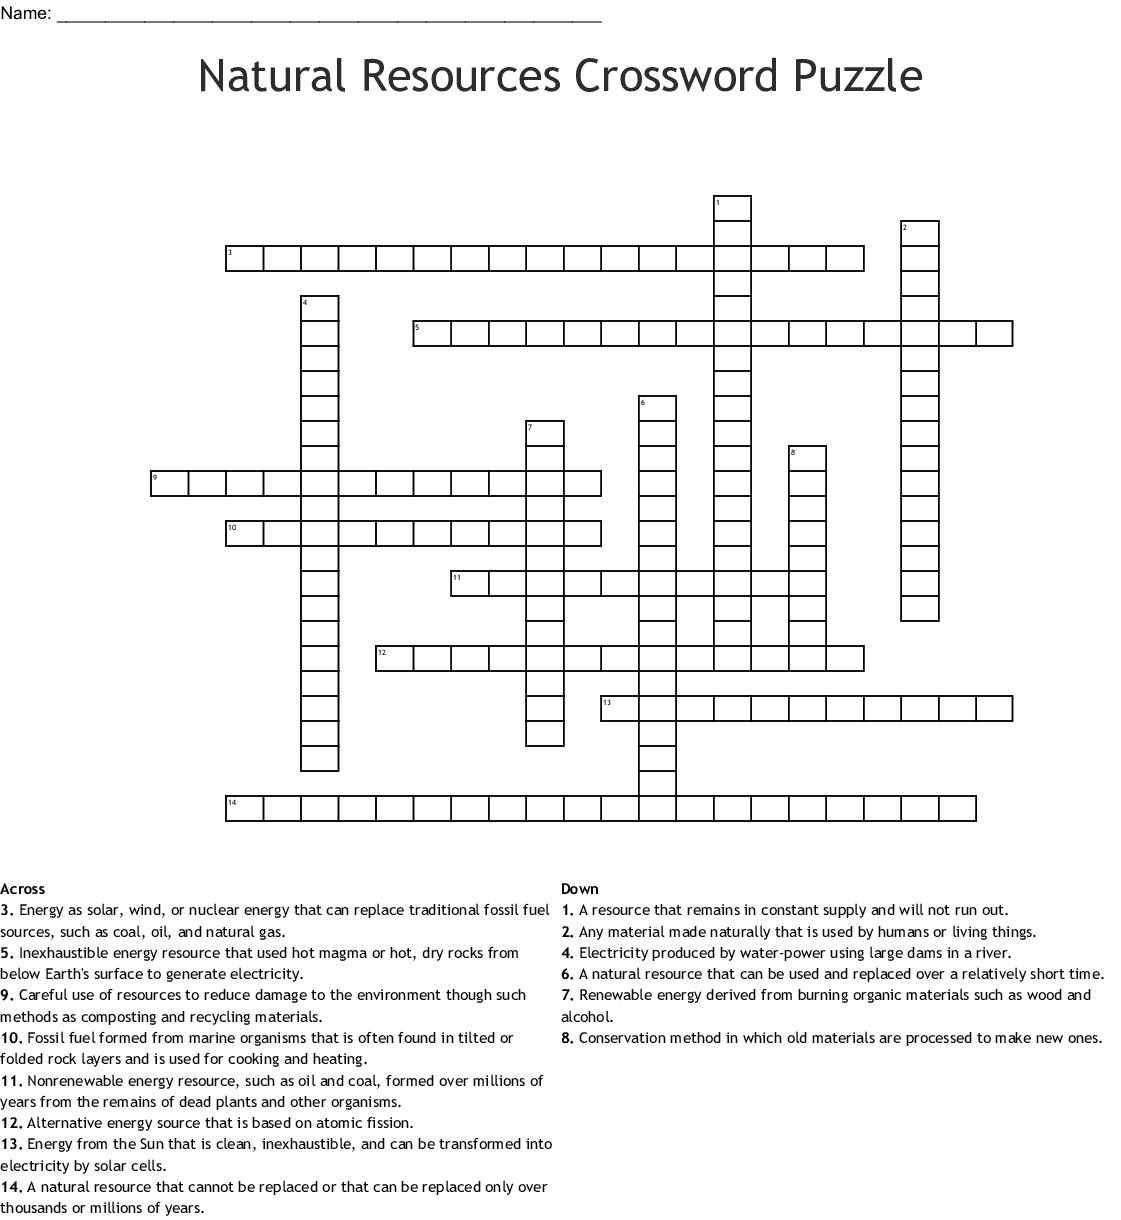 Natural Resources Crossword Puzzle